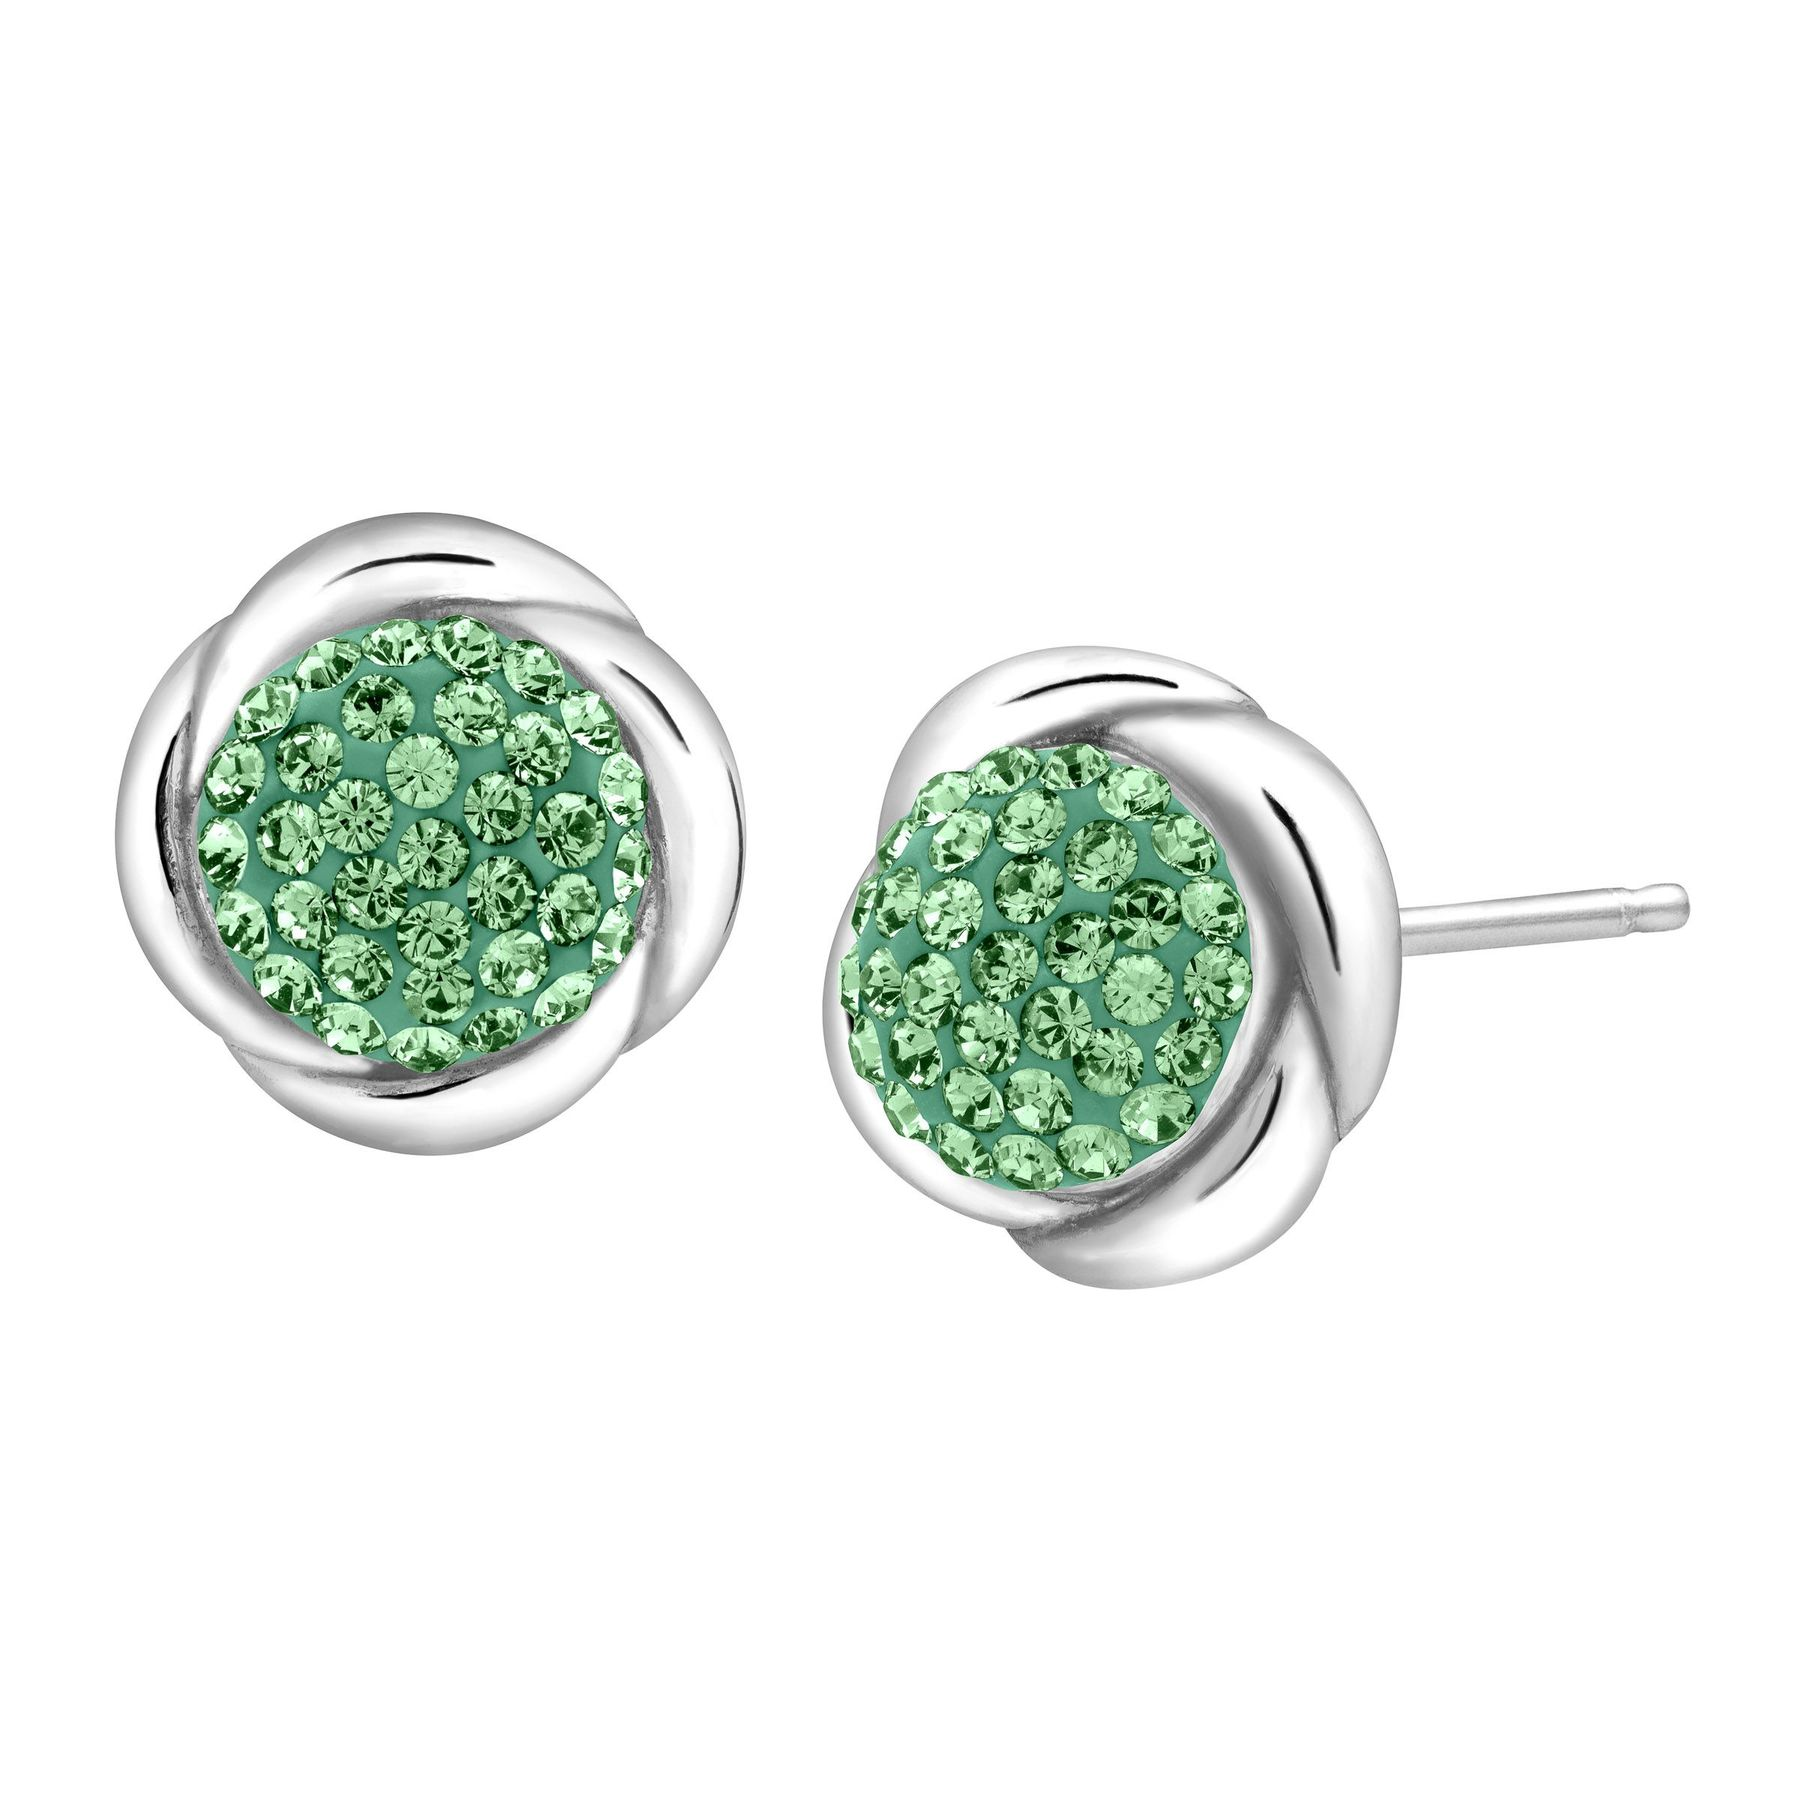 On Stud Earrings With Green Swarovski Crystals